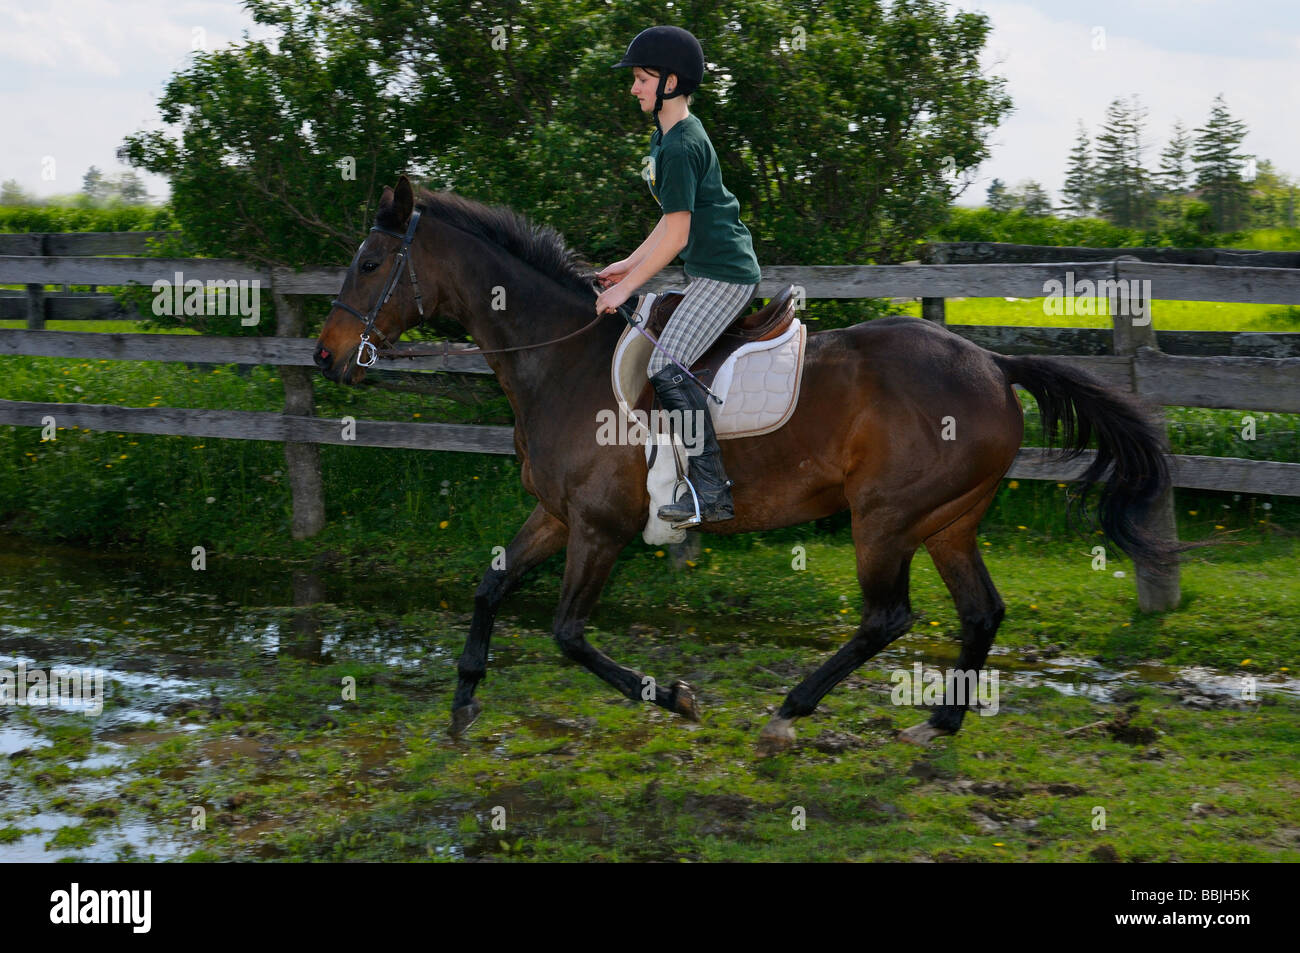 Girl riding into a puddle on a bay thoroughbred horse at a canter - Stock Image